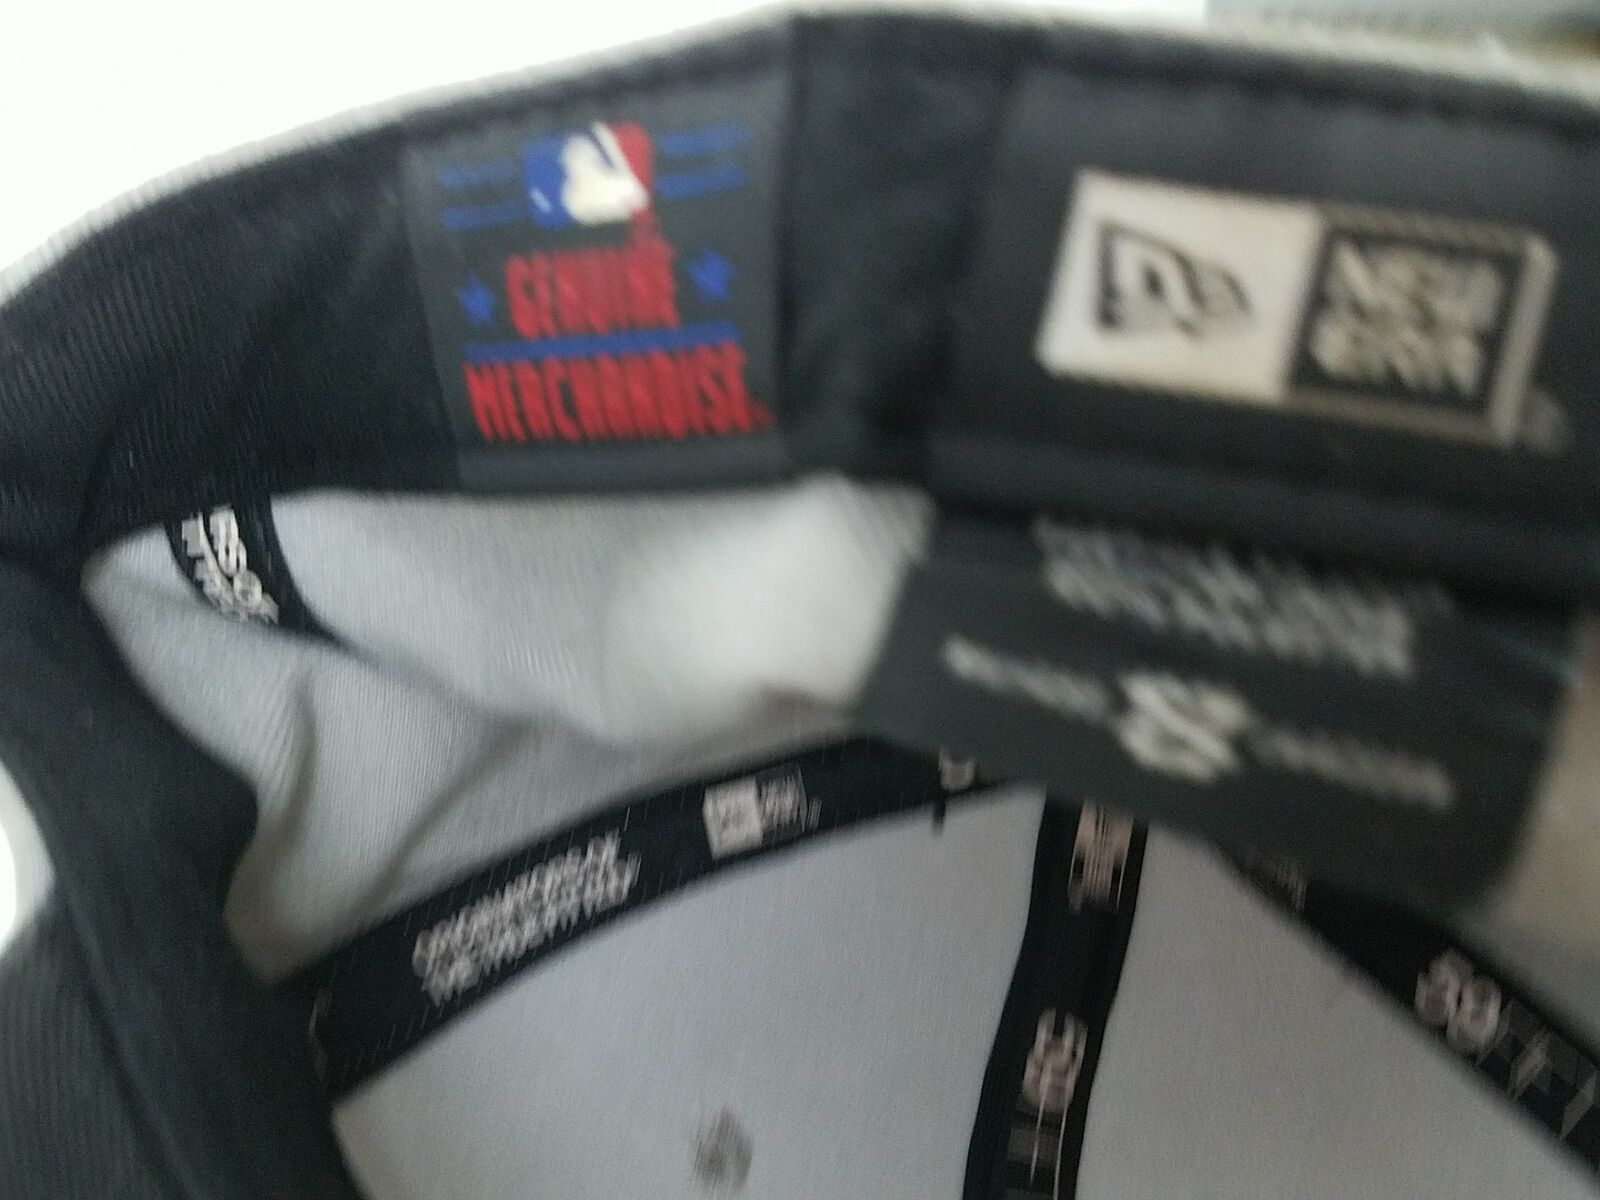 New Era 59FIFTY San Francisco SF Giants Fitted Genuine Merchandise Cap Hat